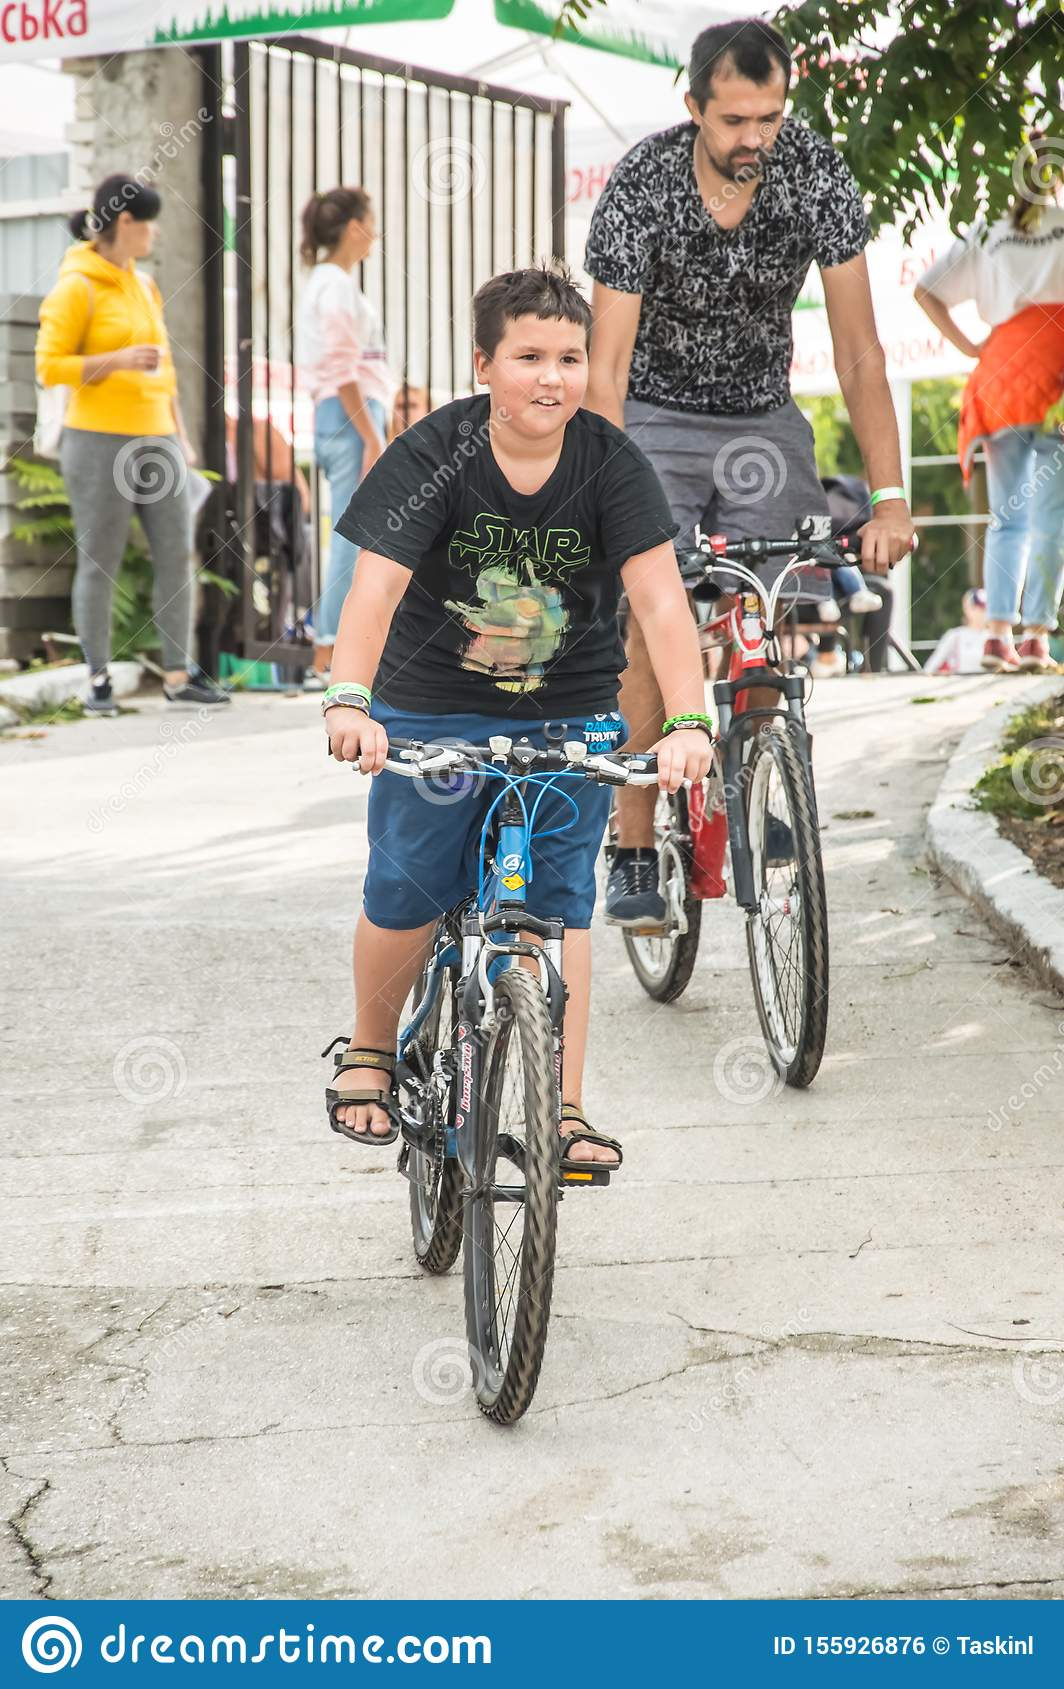 Bicyclists, adults and children, their portraits